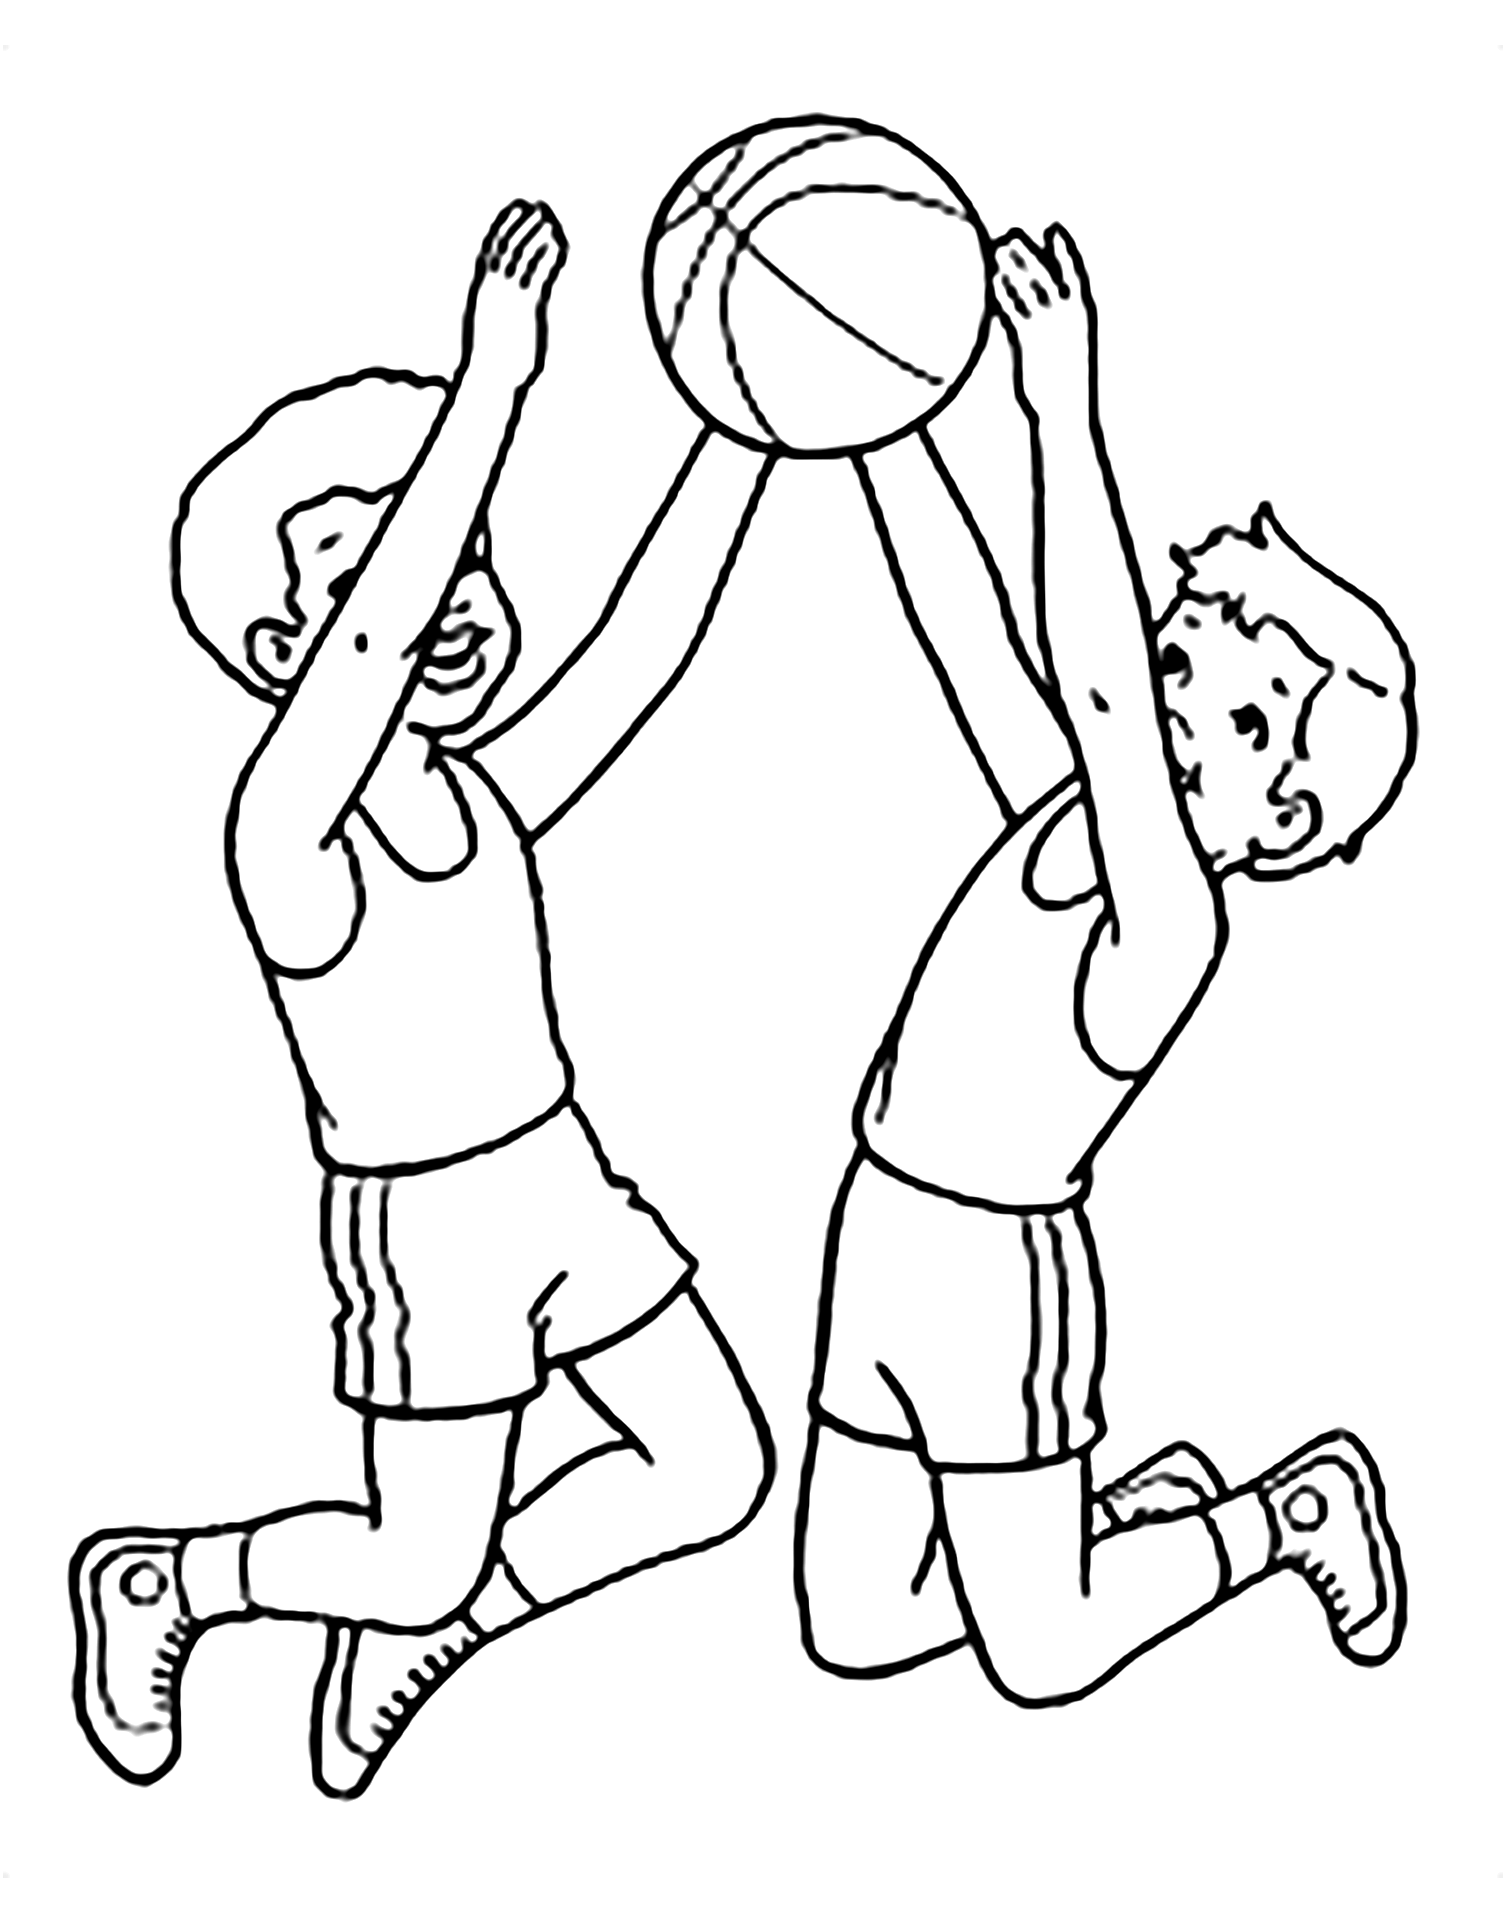 - Basketball For Children - Basketball Kids Coloring Pages